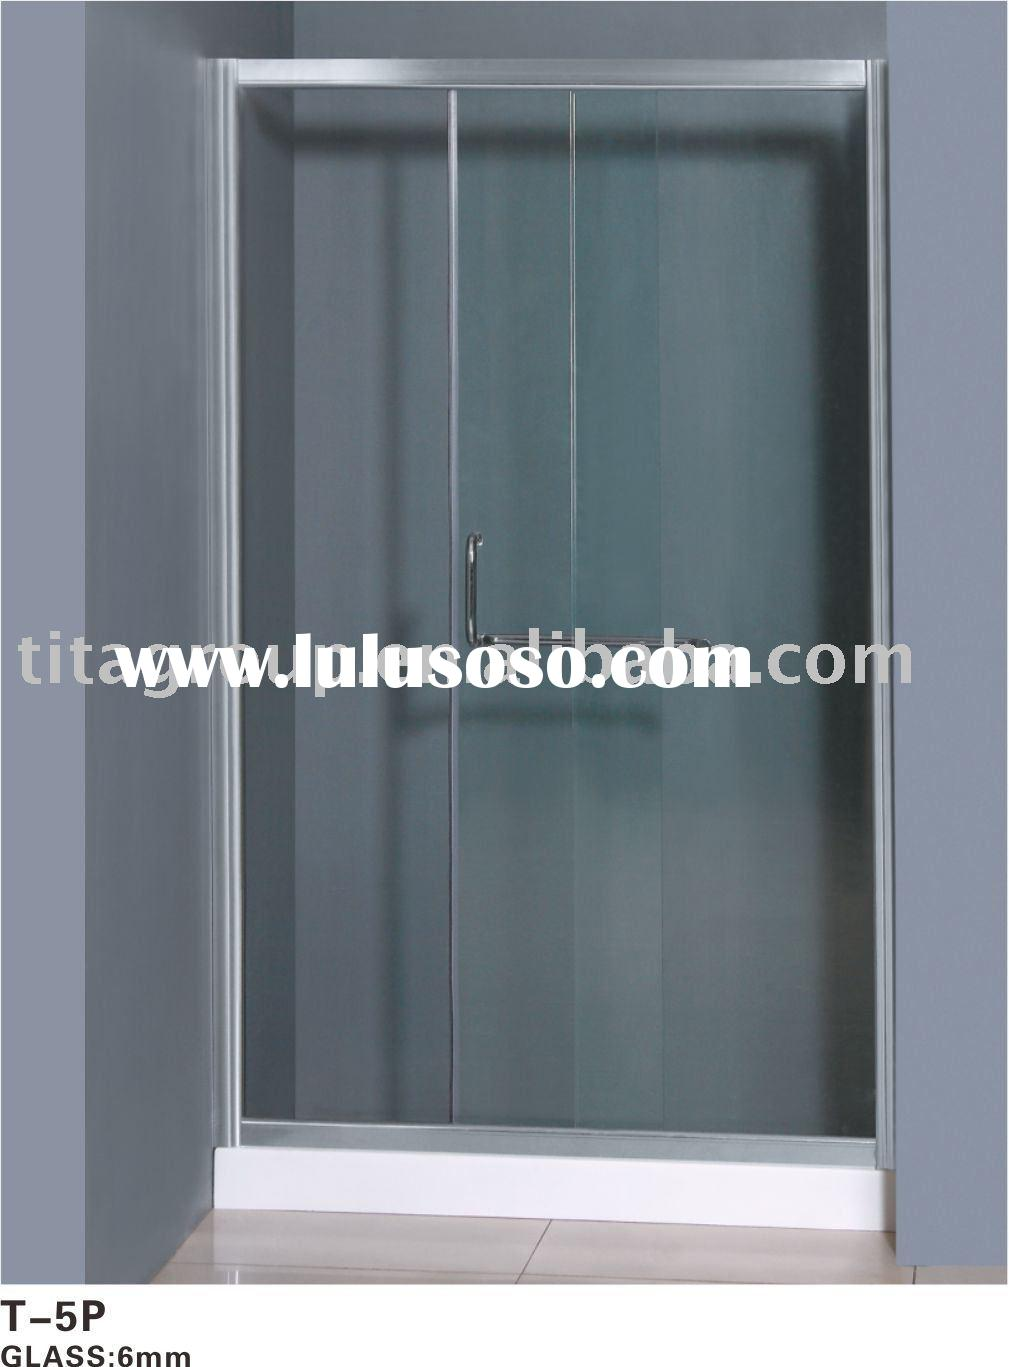 Corner Shower Enclosures 32x32 Corner Shower Enclosures 32x32 Manufacturers